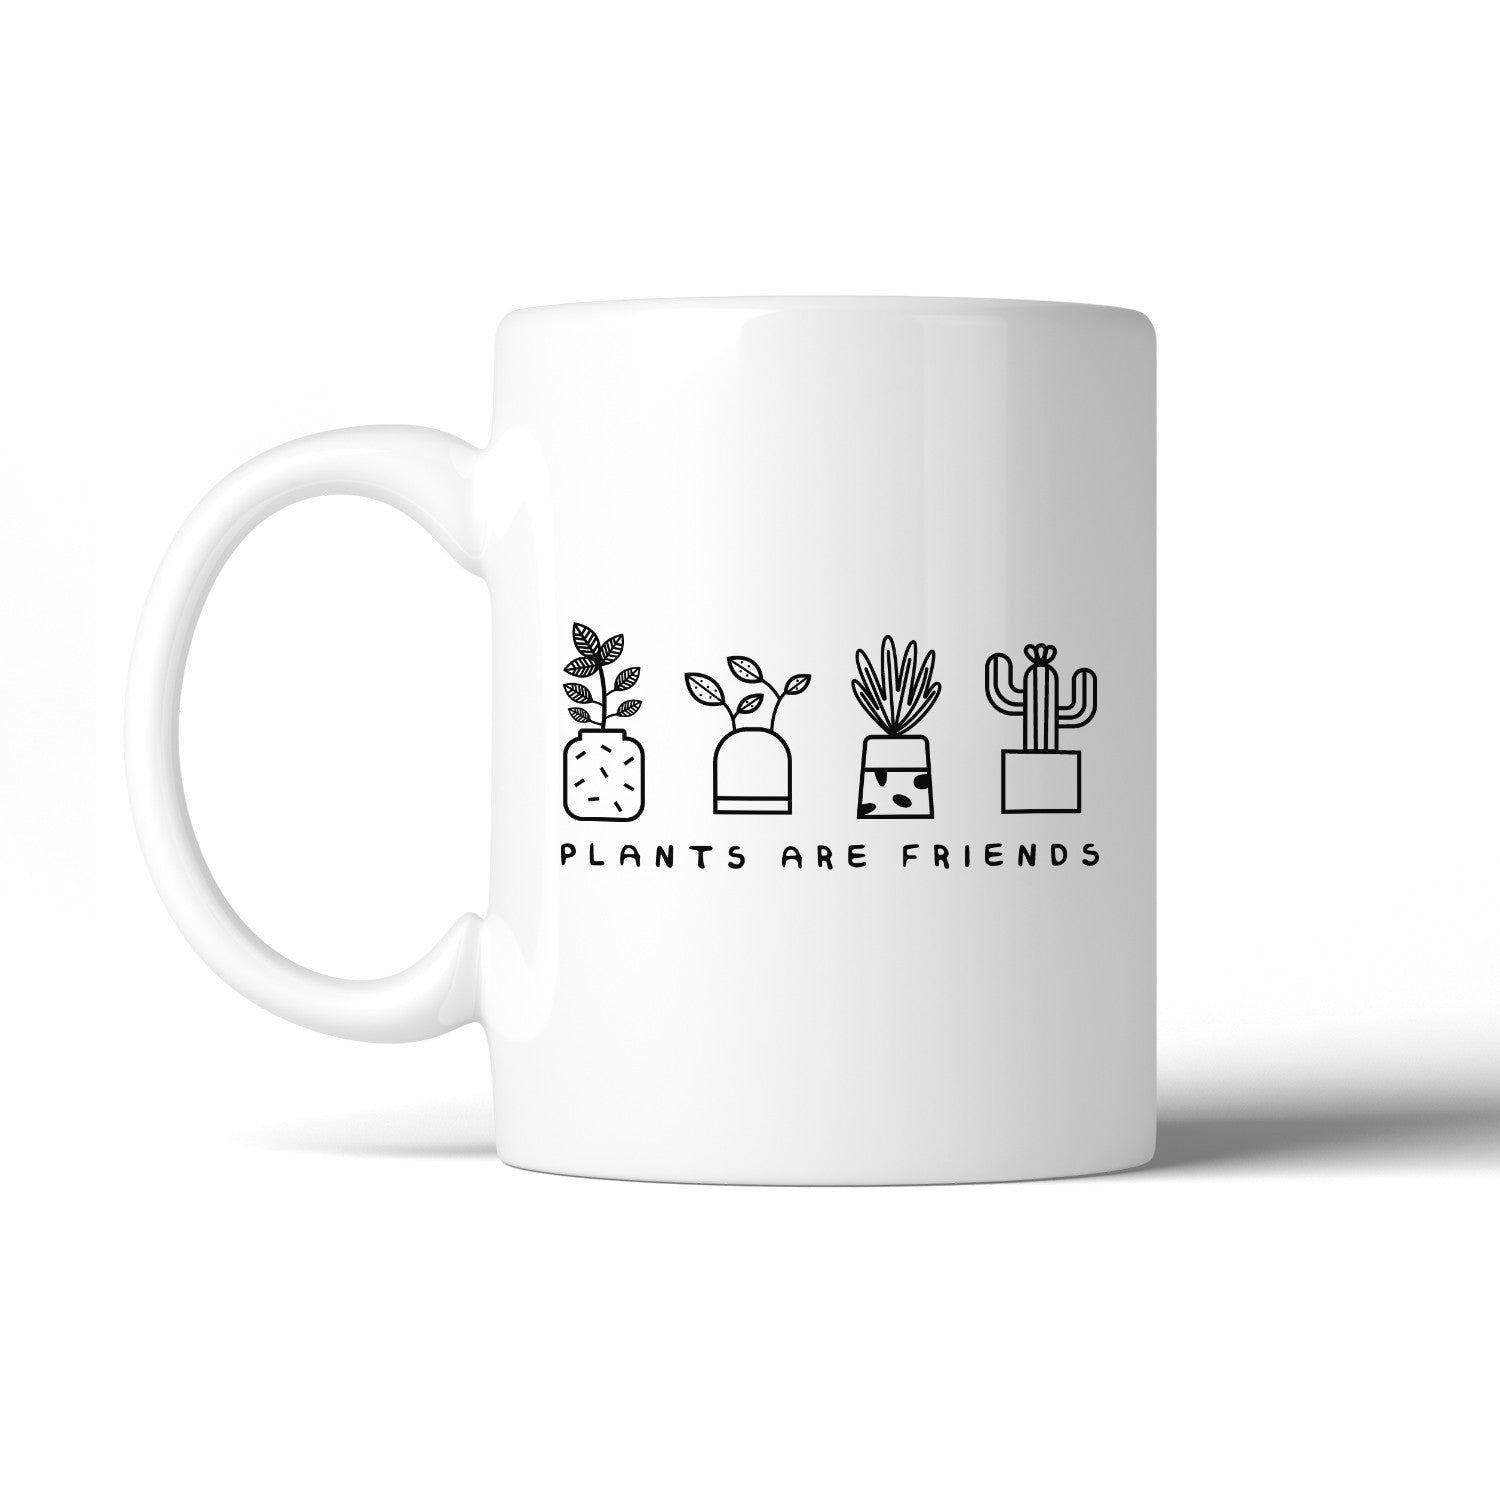 Plants Are Friends Cute Design Coffee Mug Gift Idea For Plant Lover ...